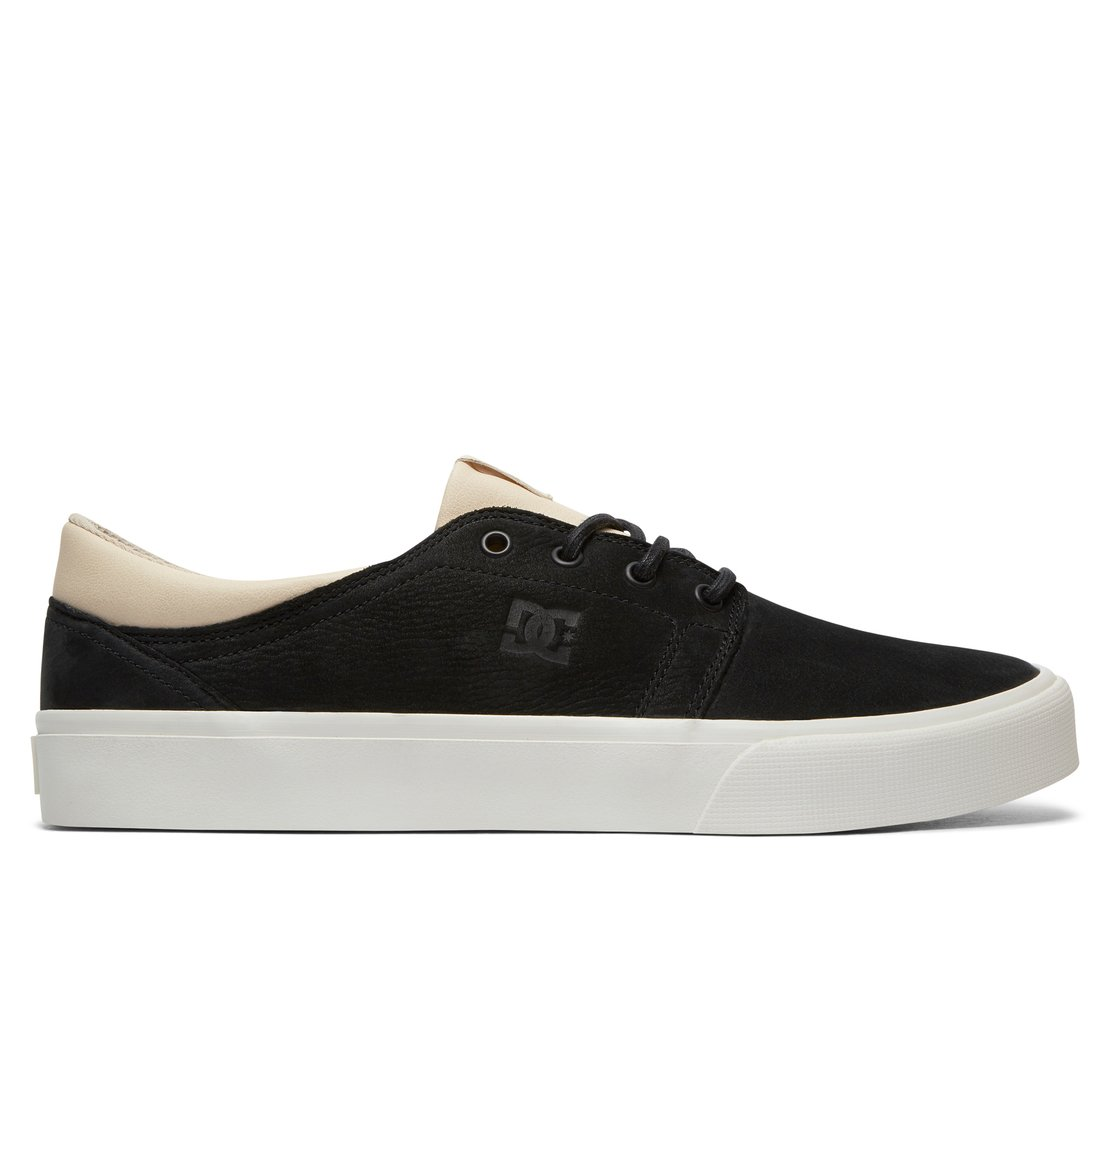 DC Shoes Trase SE - Shoes - Zapatos - Hombre - EU 44 gsXTgkIAX